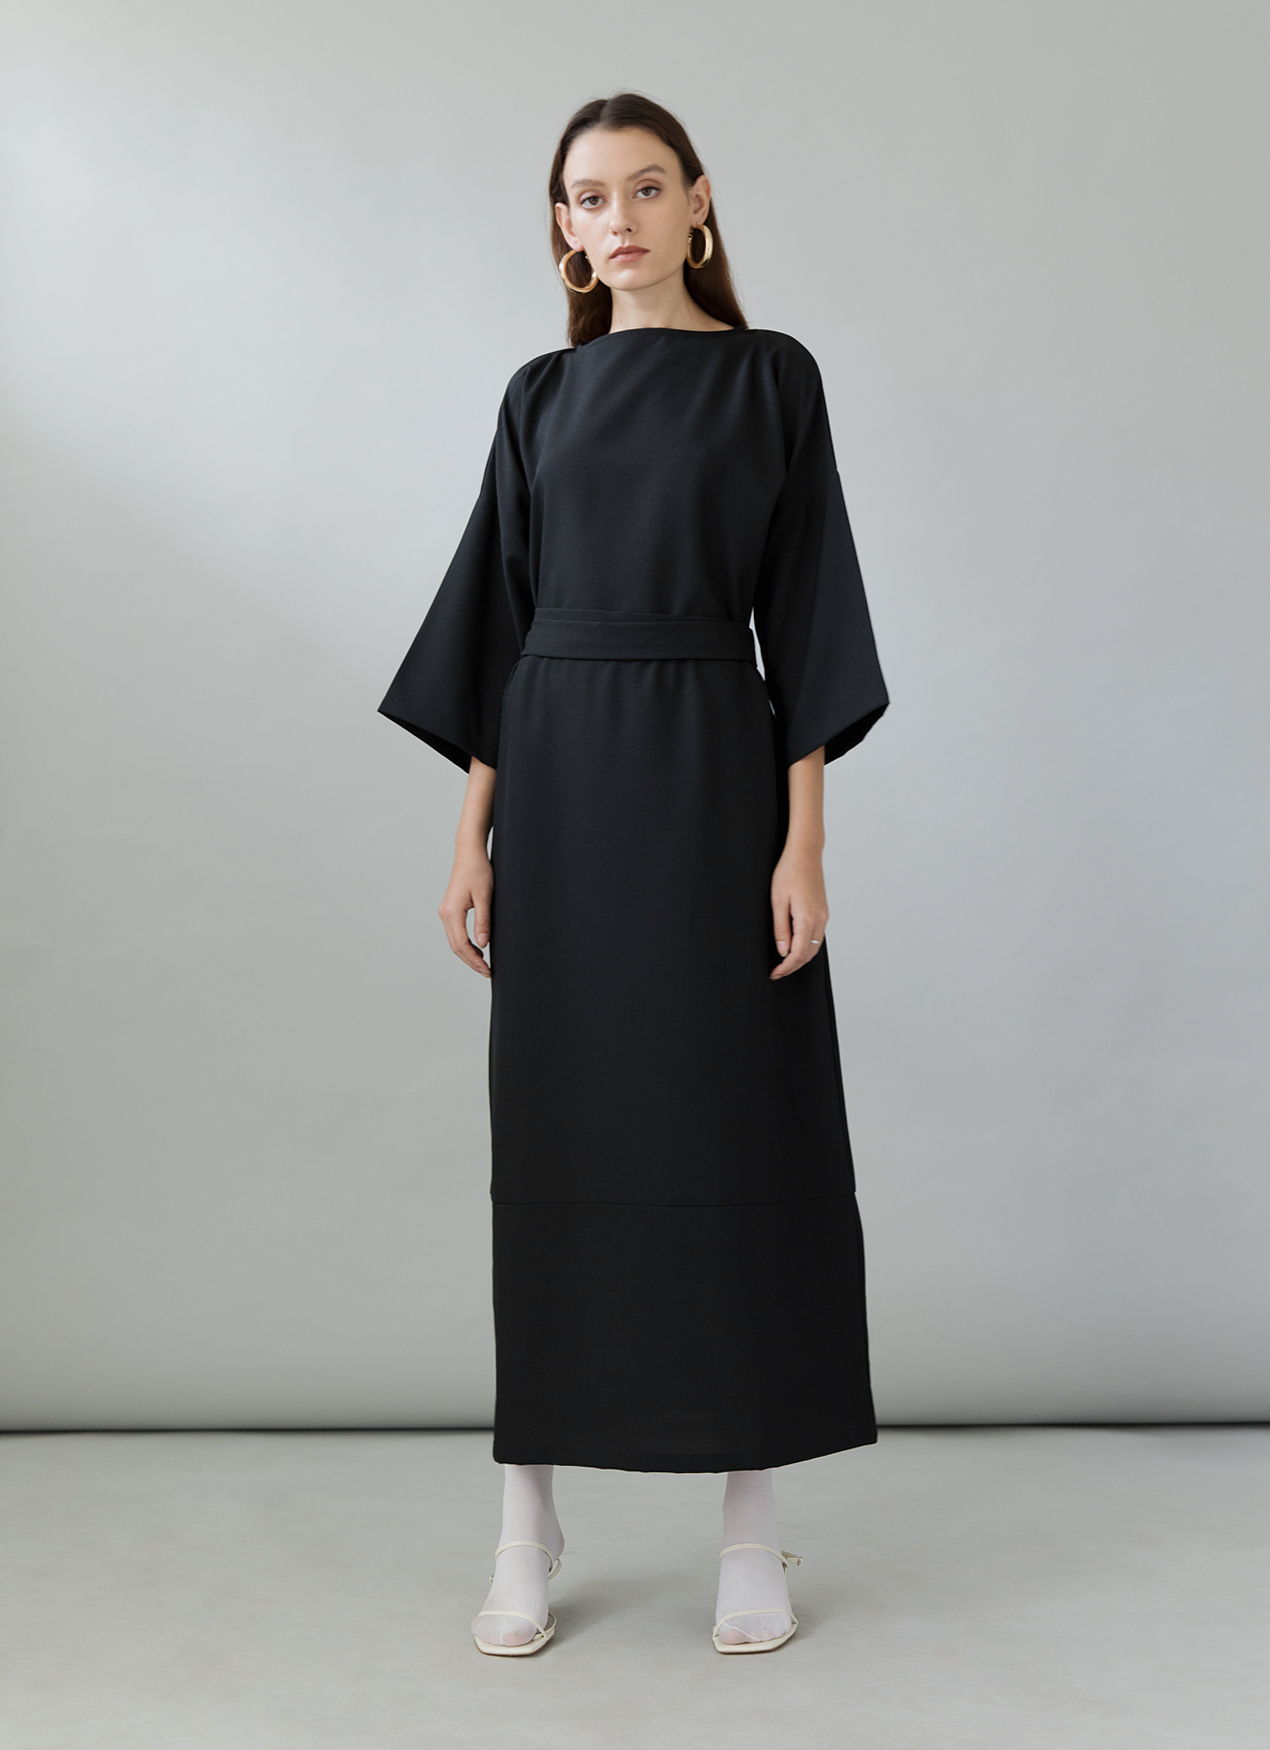 entire collection vast selection new lifestyle Ganni Black Dress - Black, ATS THE LABEL